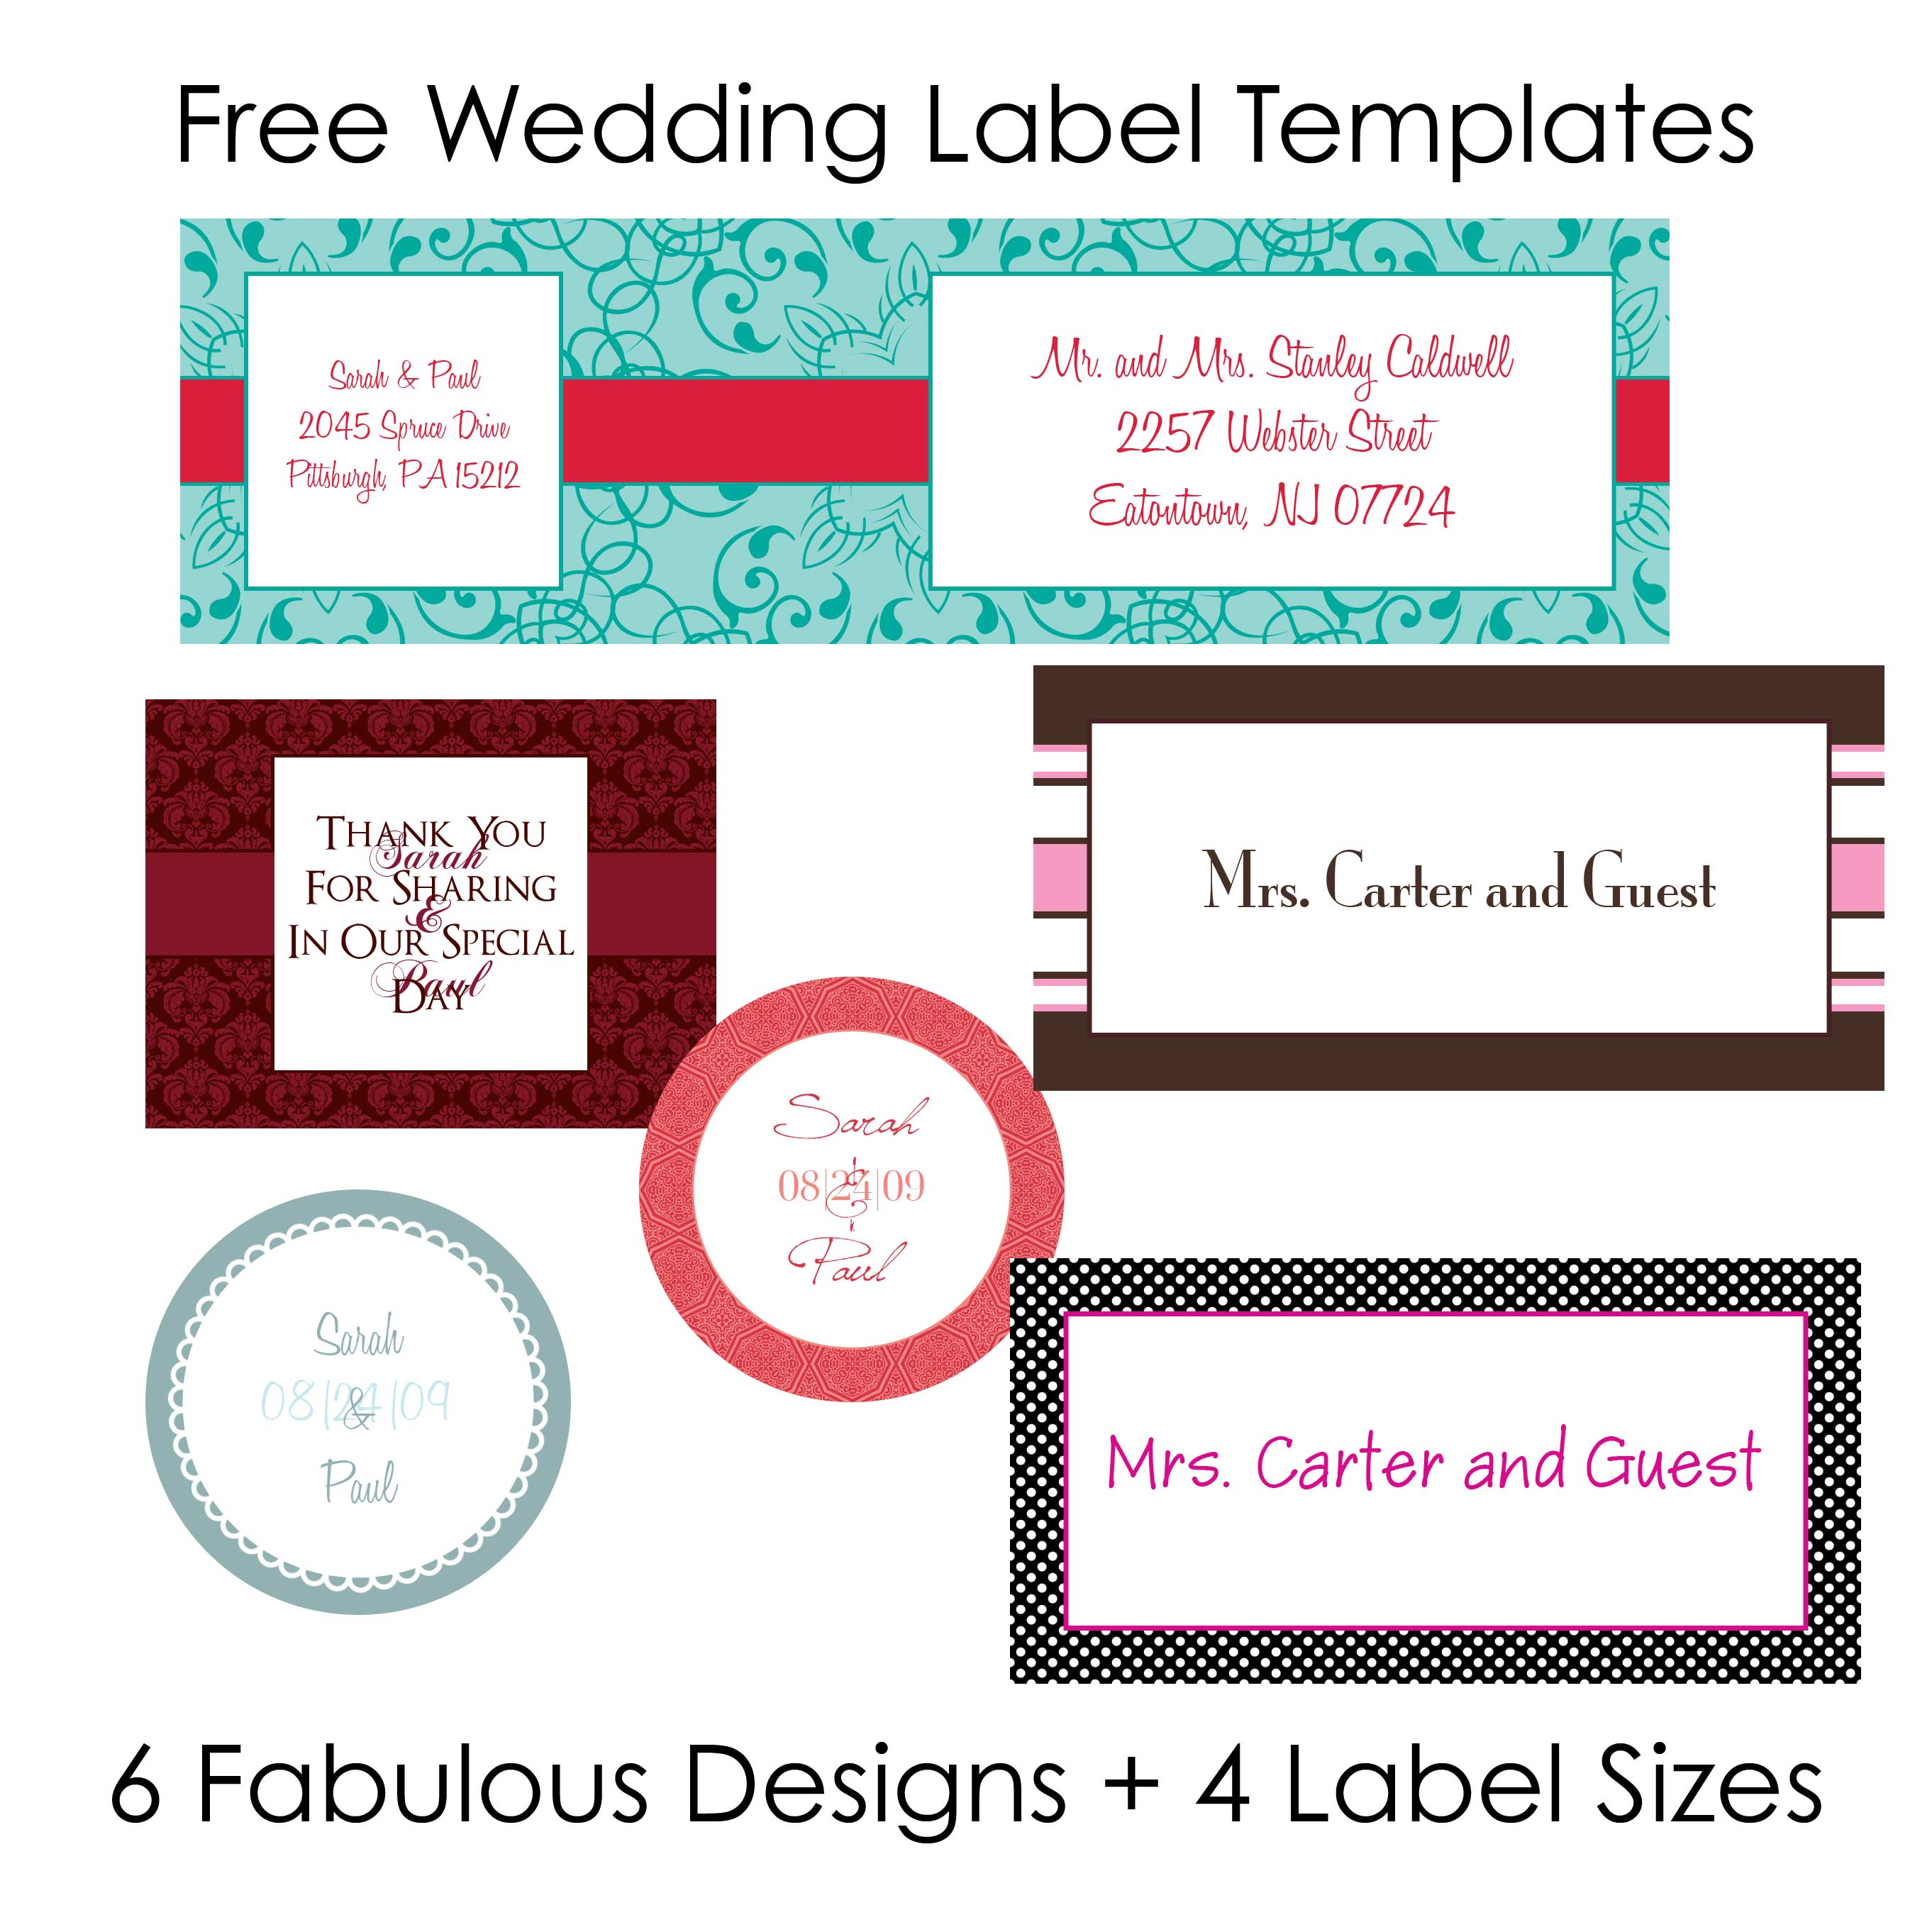 DIY Wedding Labels For Free Collection Two